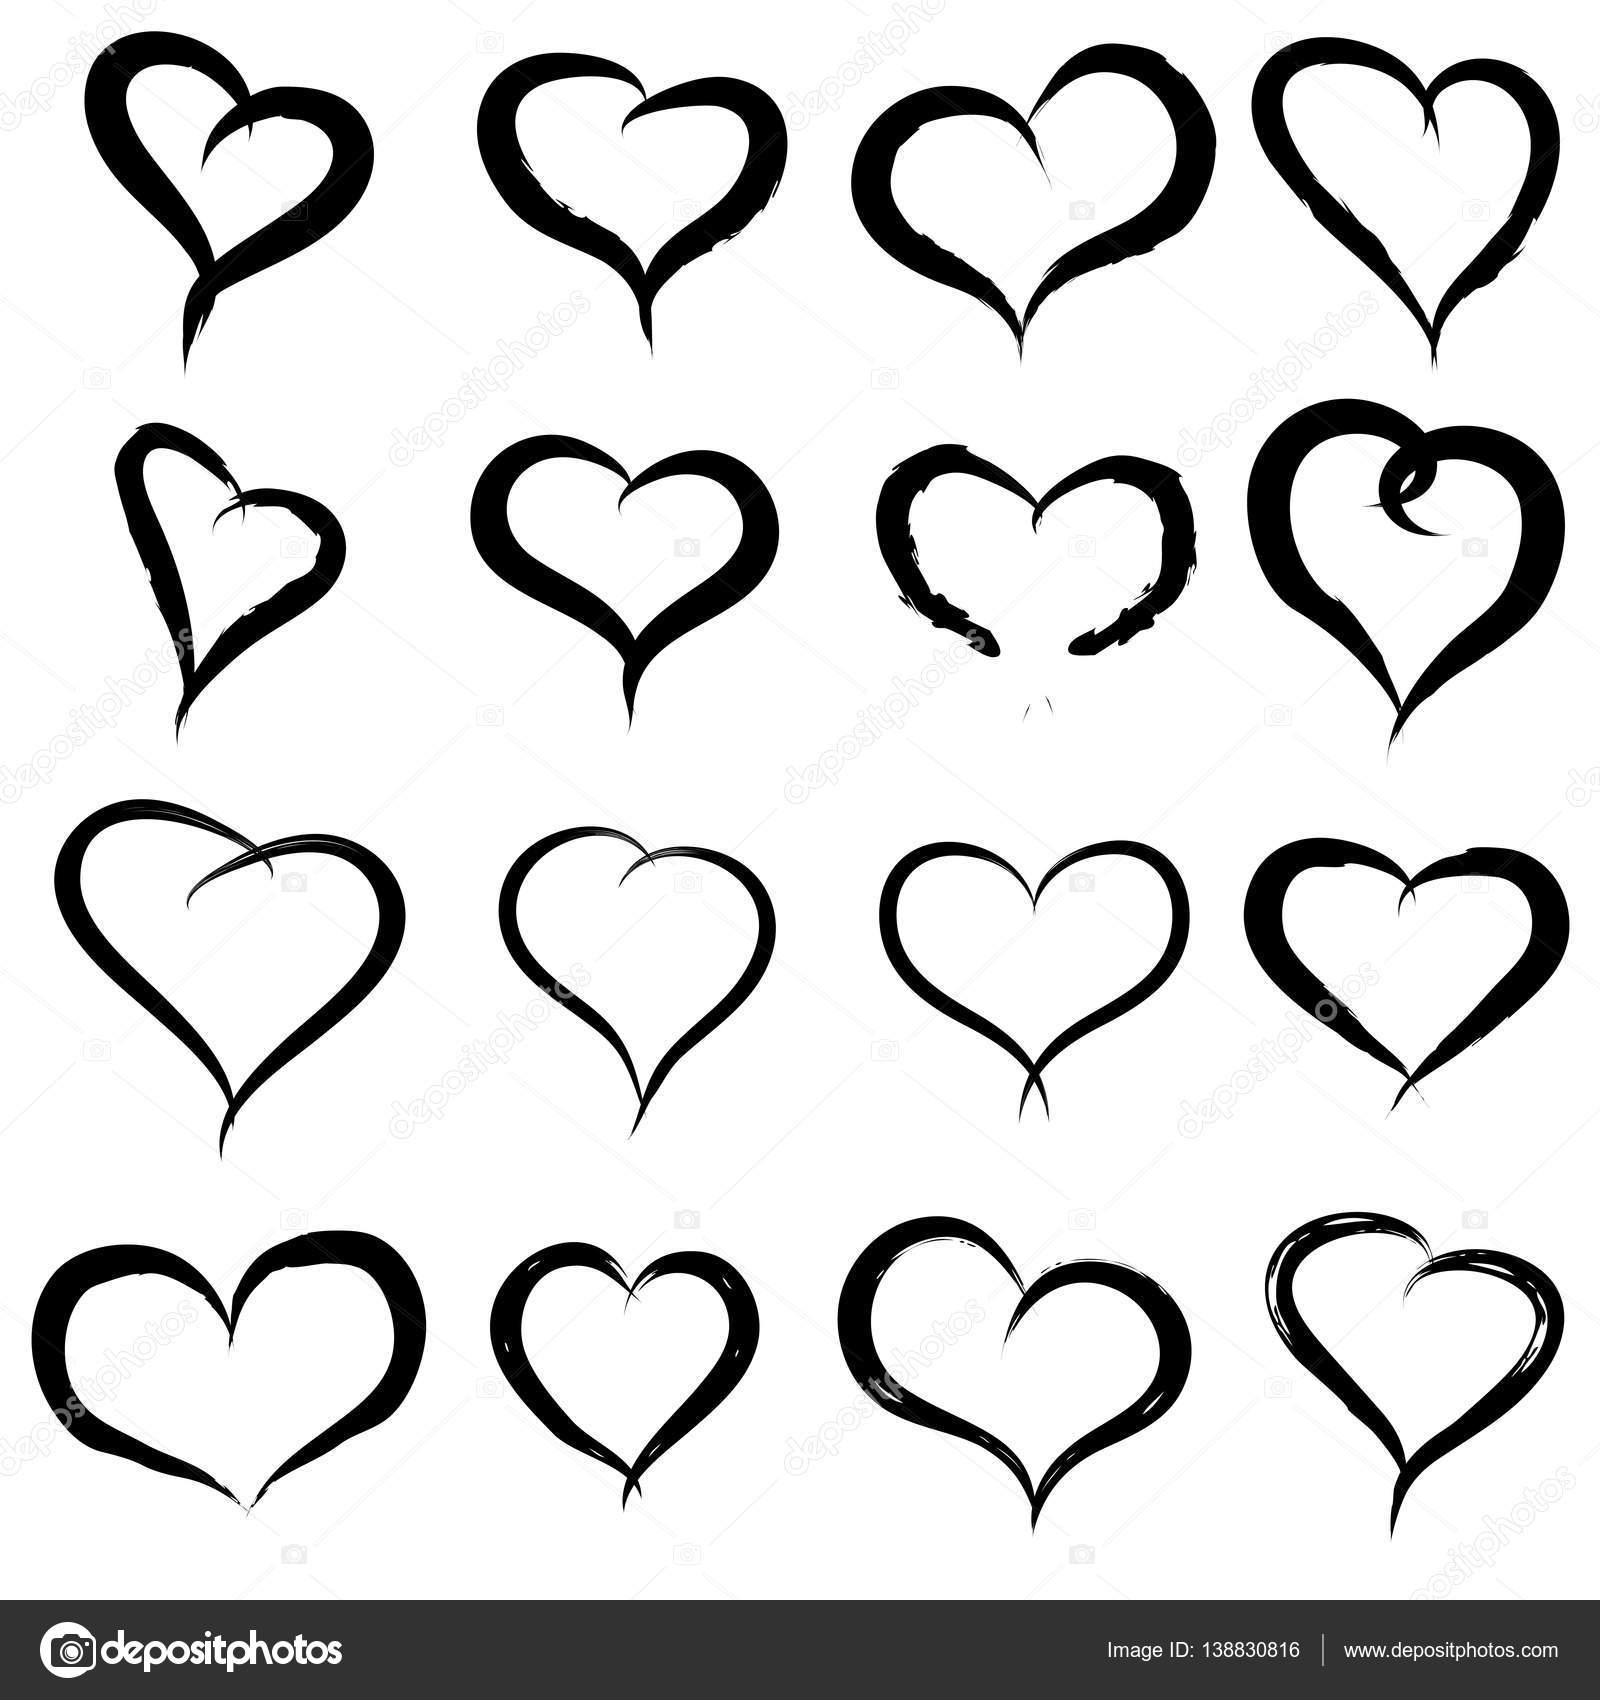 Images of Awesome Heart Symbols Copy And Paste - #rock-cafe